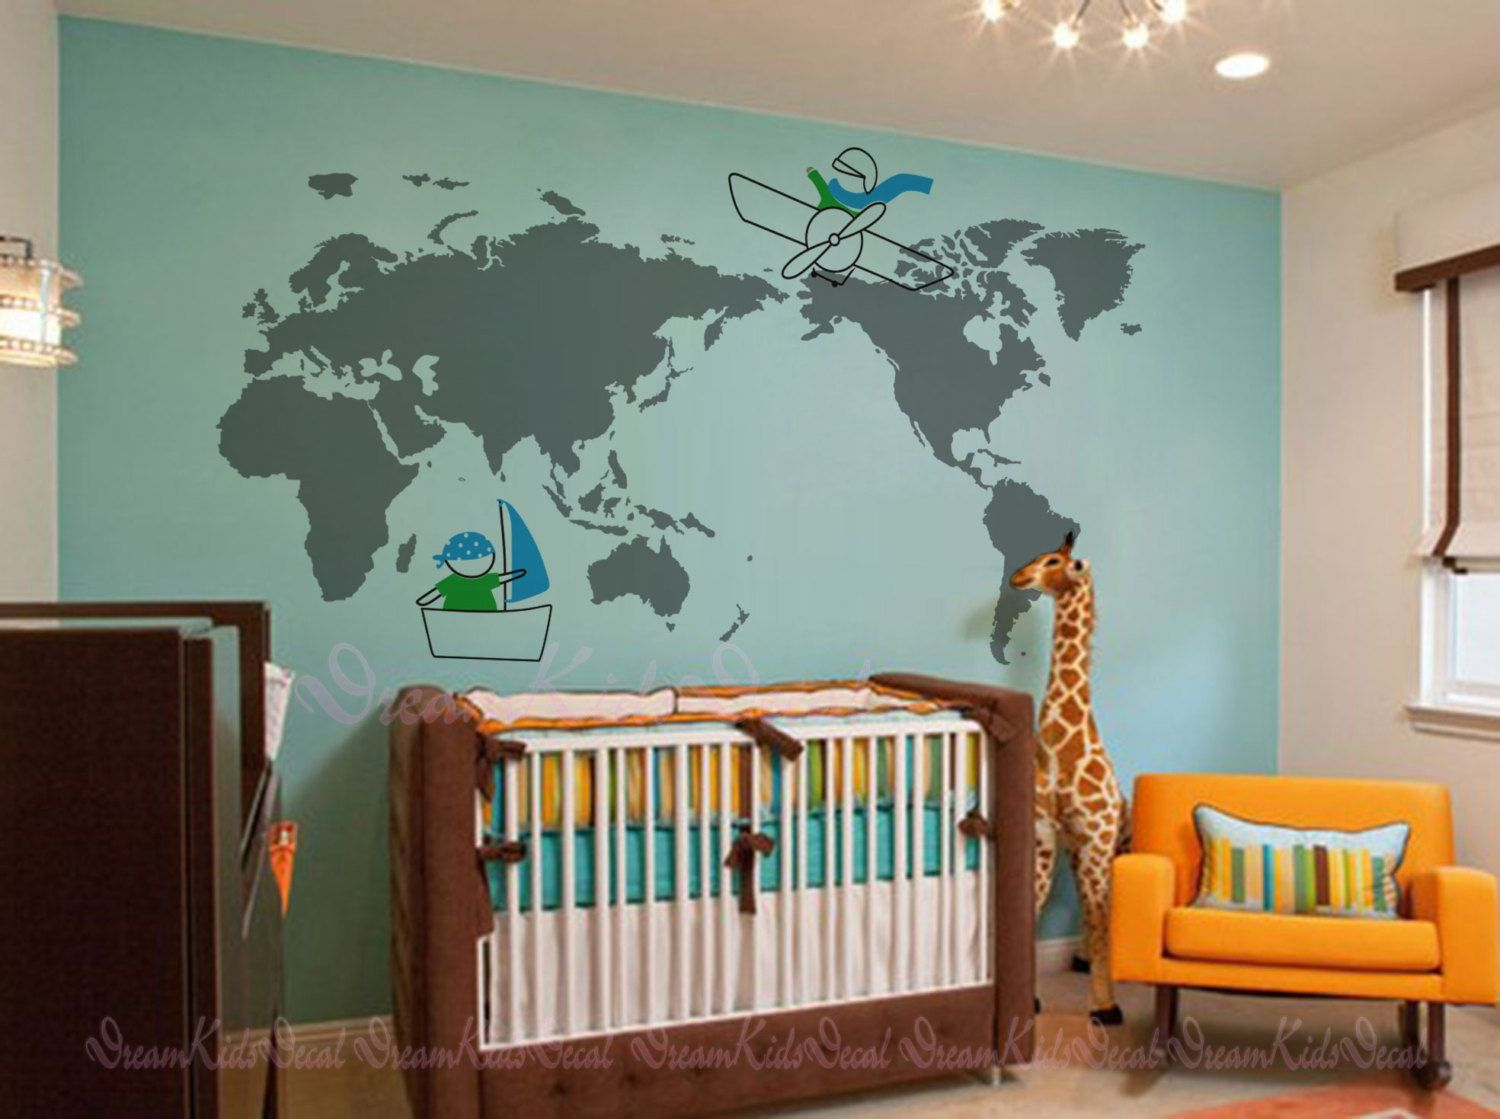 World map decal 79 x 39 for nursery room kids by dreamkidsdecal world map decal 79 x 39 for nursery room kids by dreamkidsdecal gumiabroncs Images